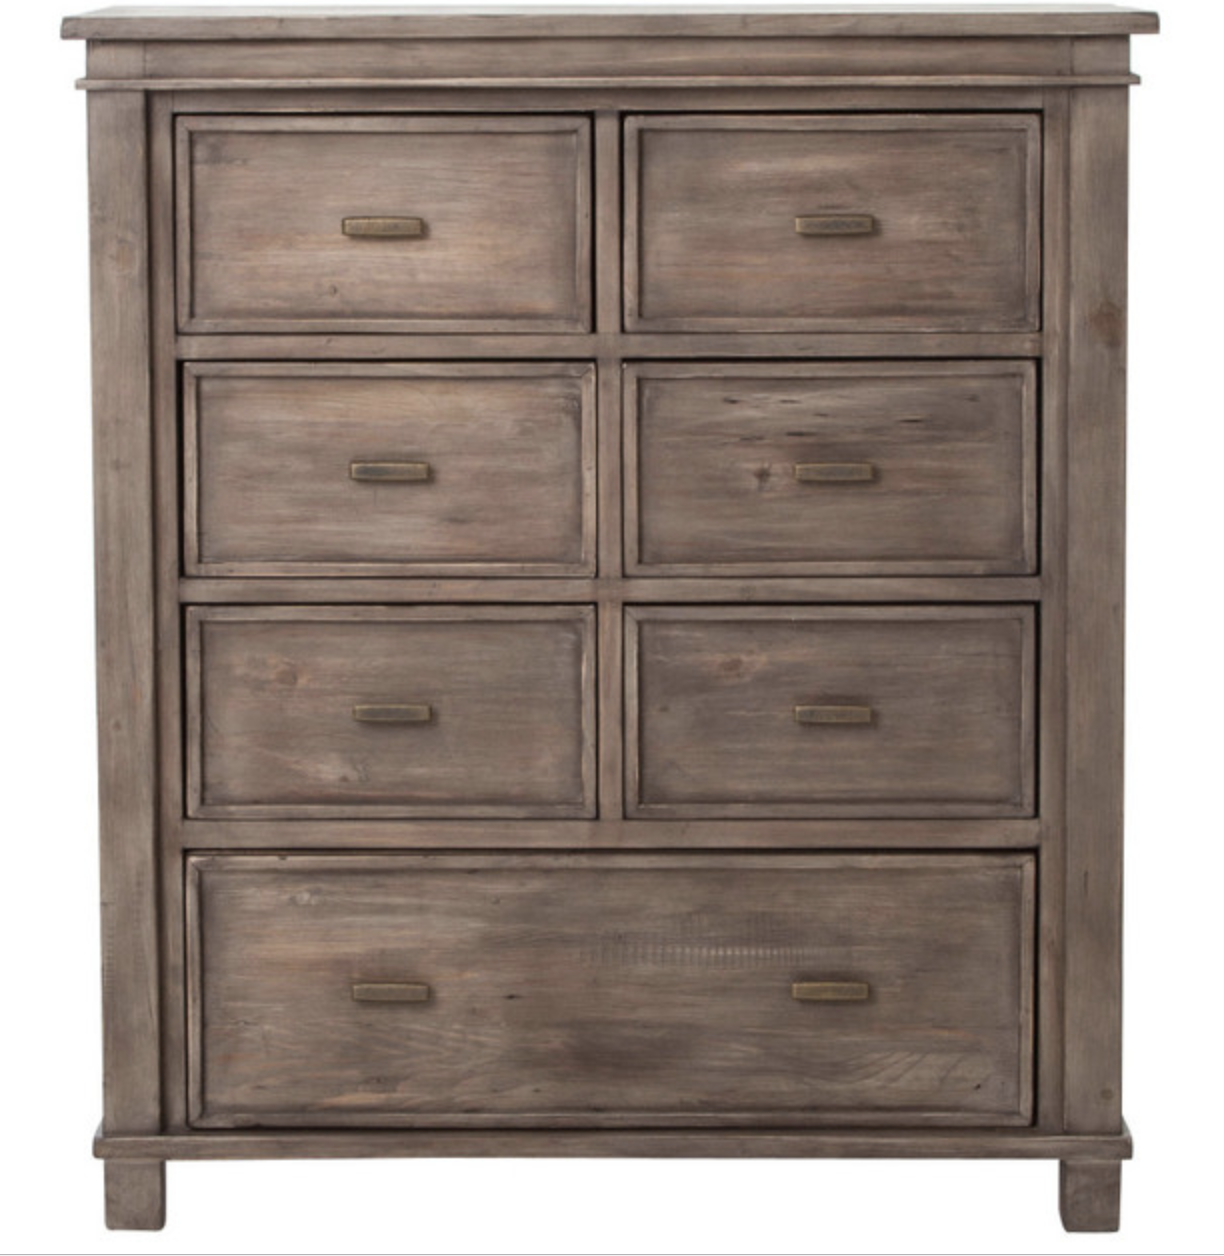 Click  here  for more info on this dresser.